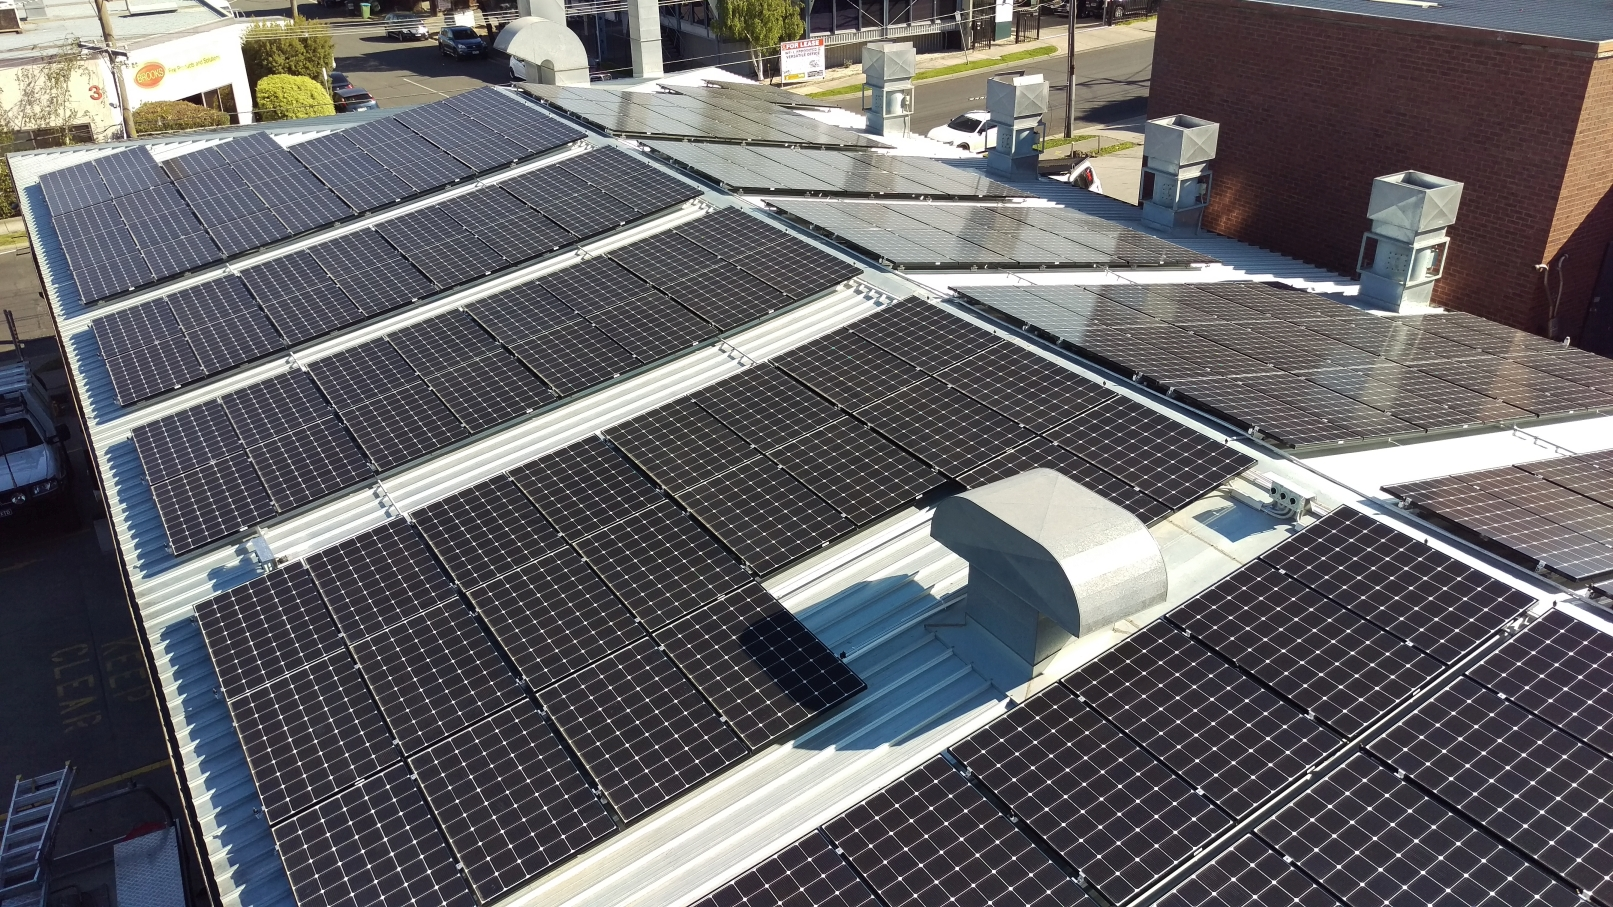 A 96kW commercial rooftop installation using LG Neon 2 330W panels and Tigo optimisers.